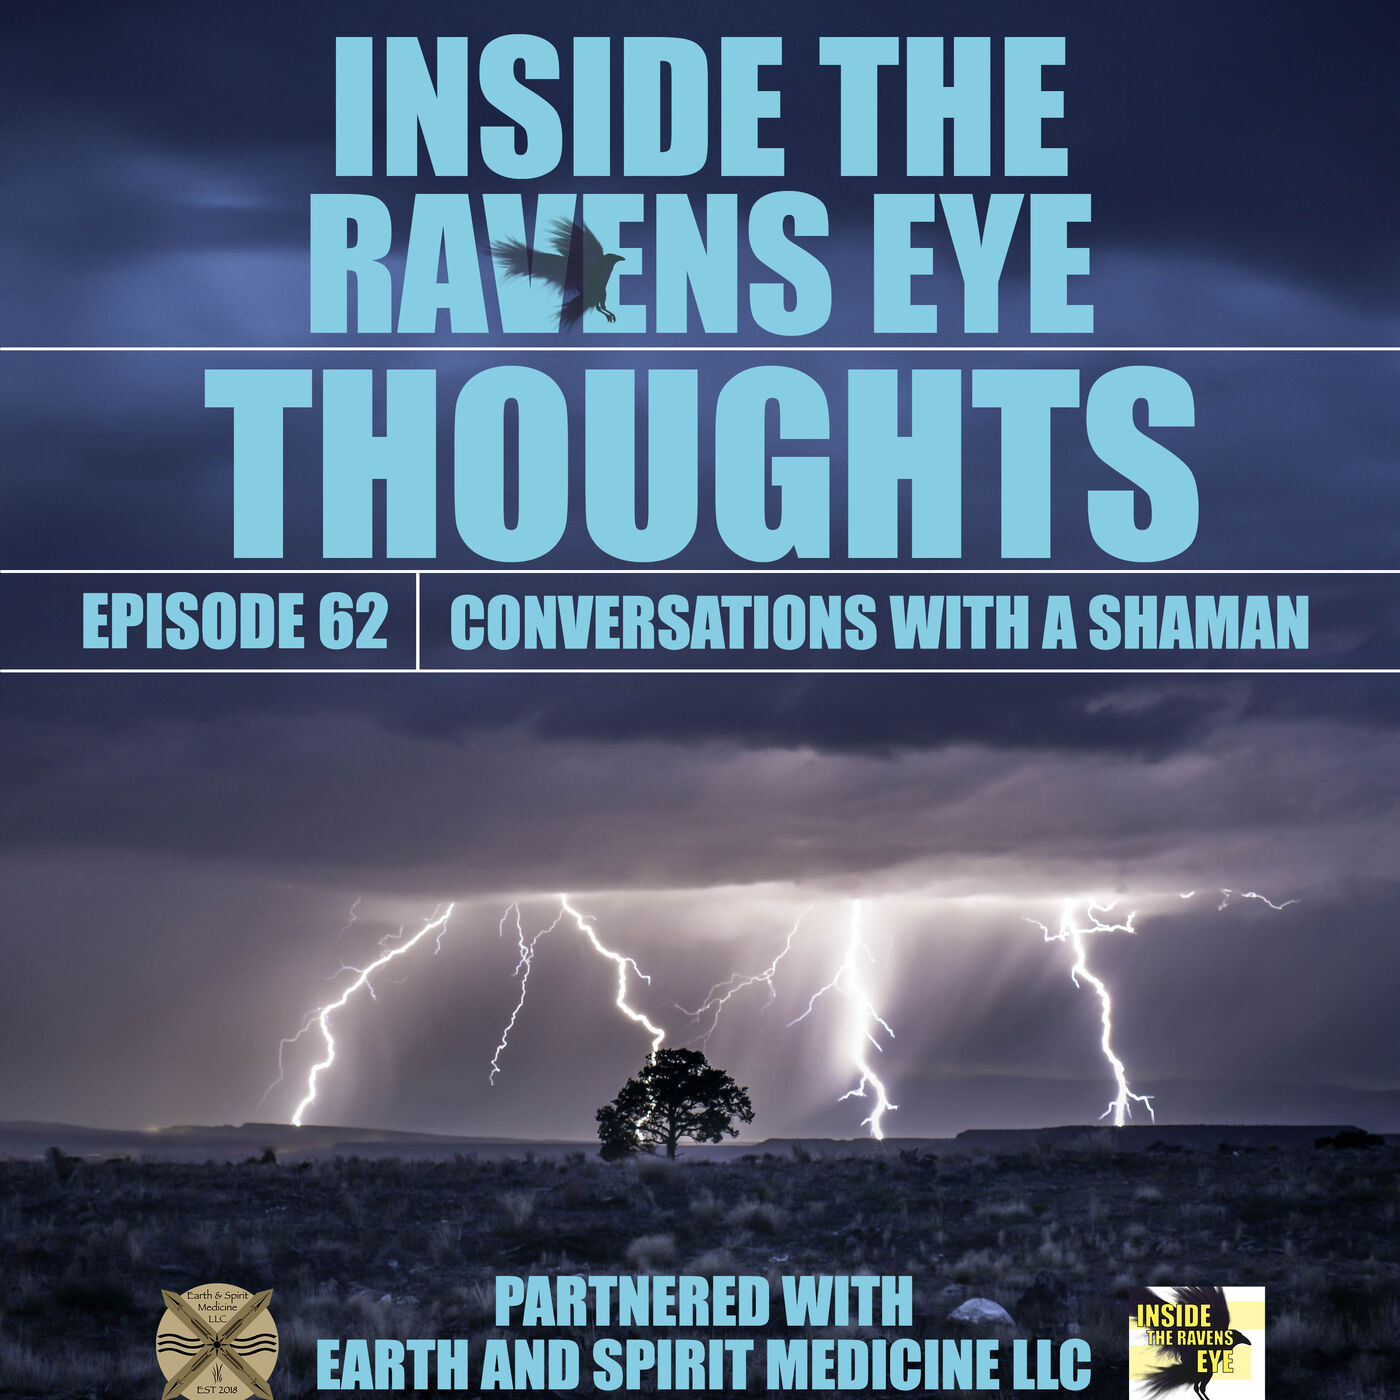 Thoughts - Episode 62 - Conversations with a Shaman